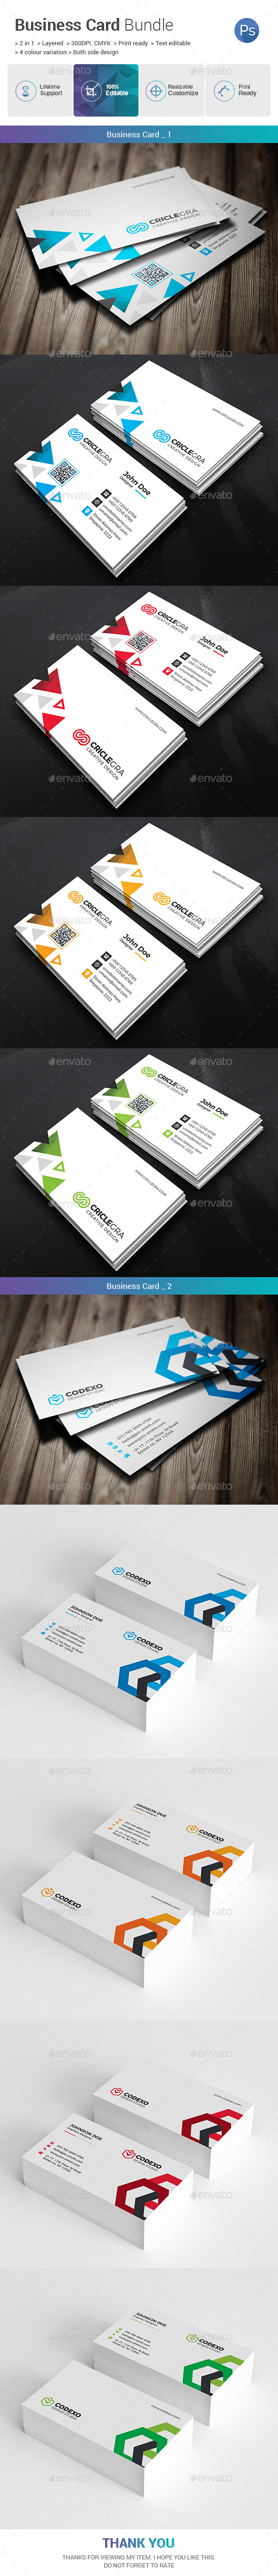 GraphicRiver Business Card Bundle 2 in 1 21069941